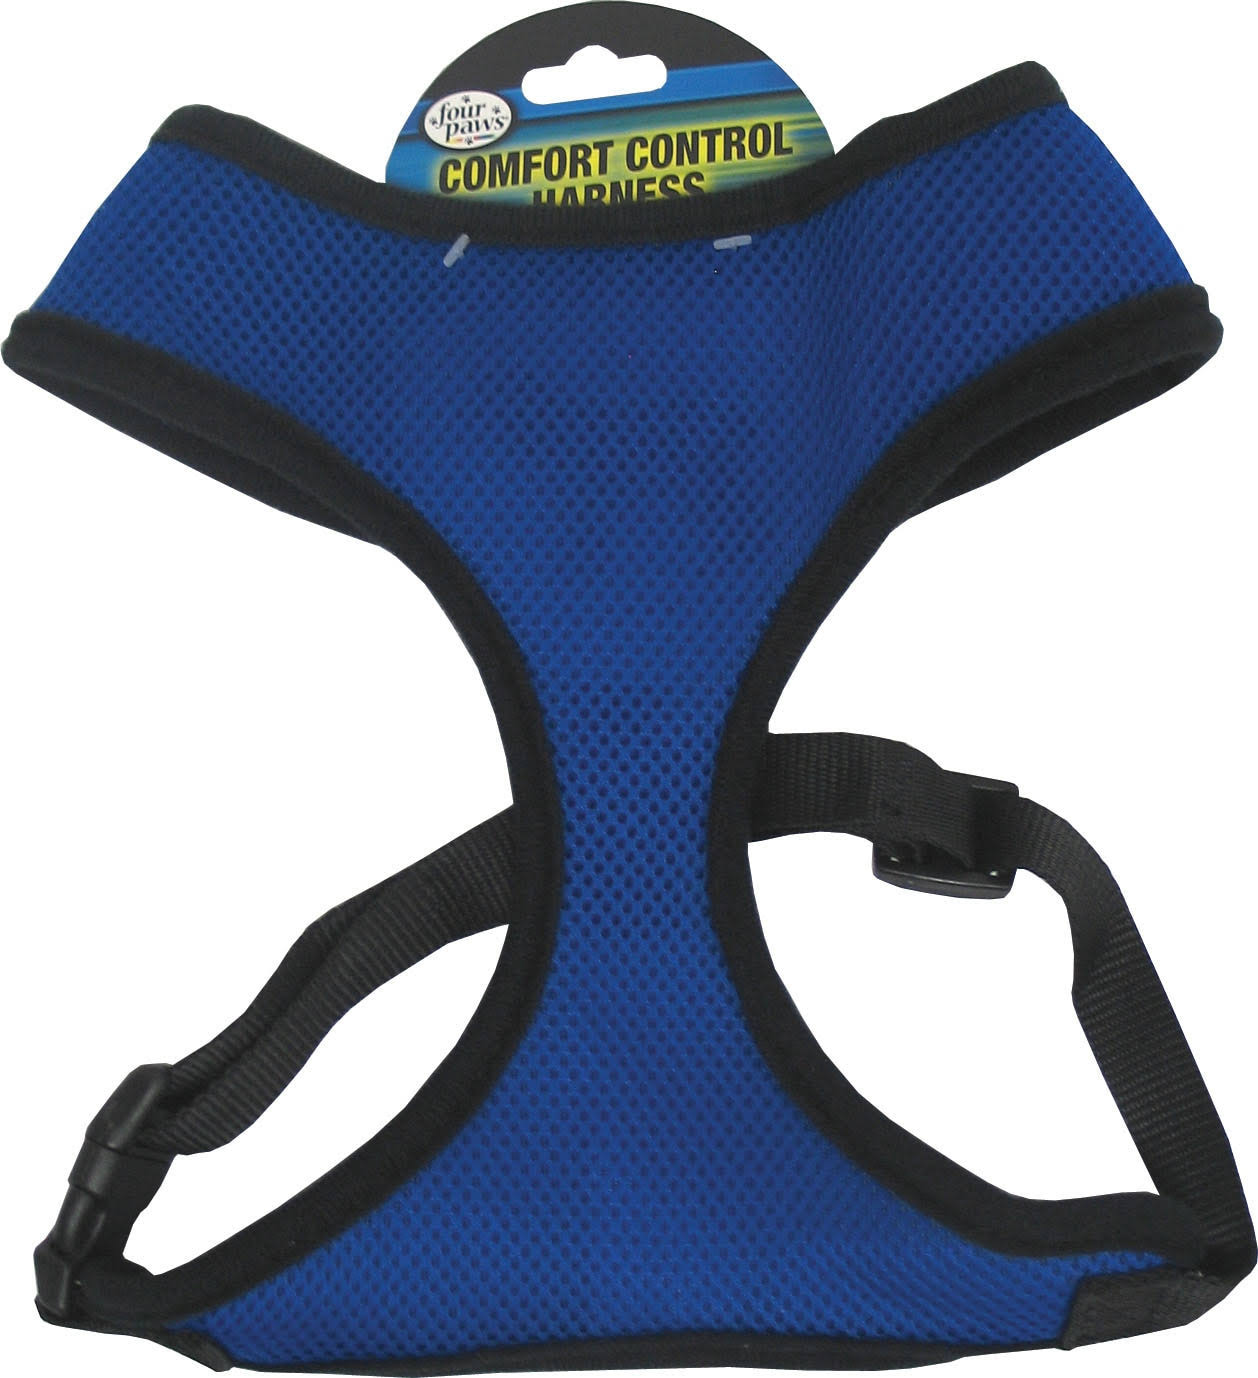 TopDawg Pet Supply Comfort Control Harness - X-Small, Blue